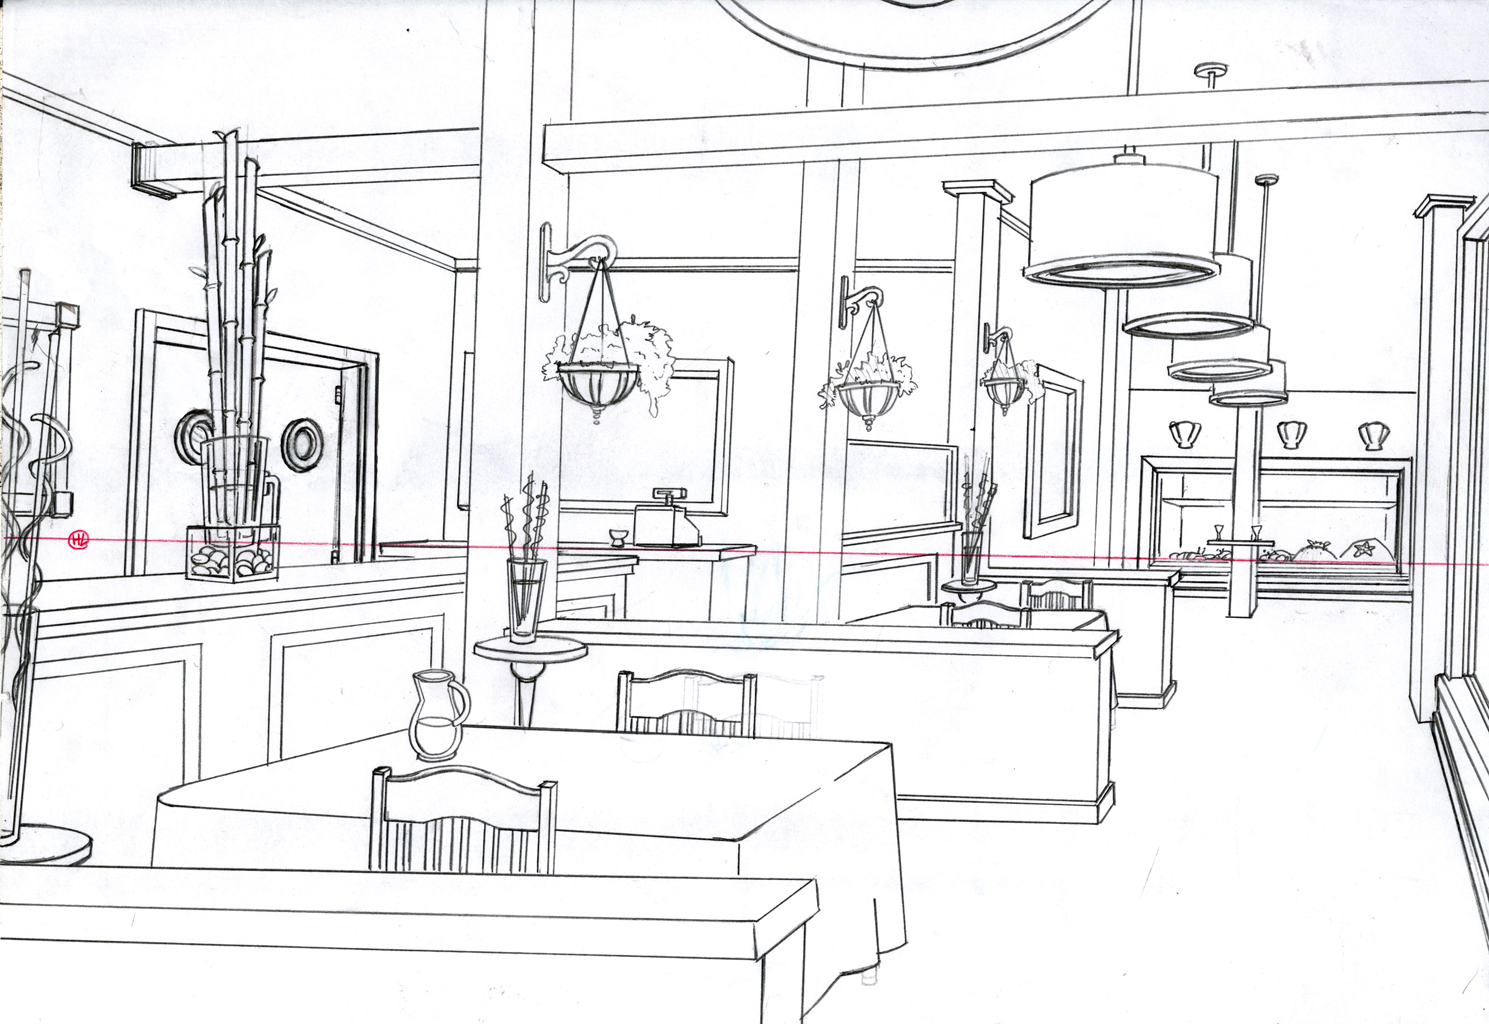 Inside Cafe Drawings